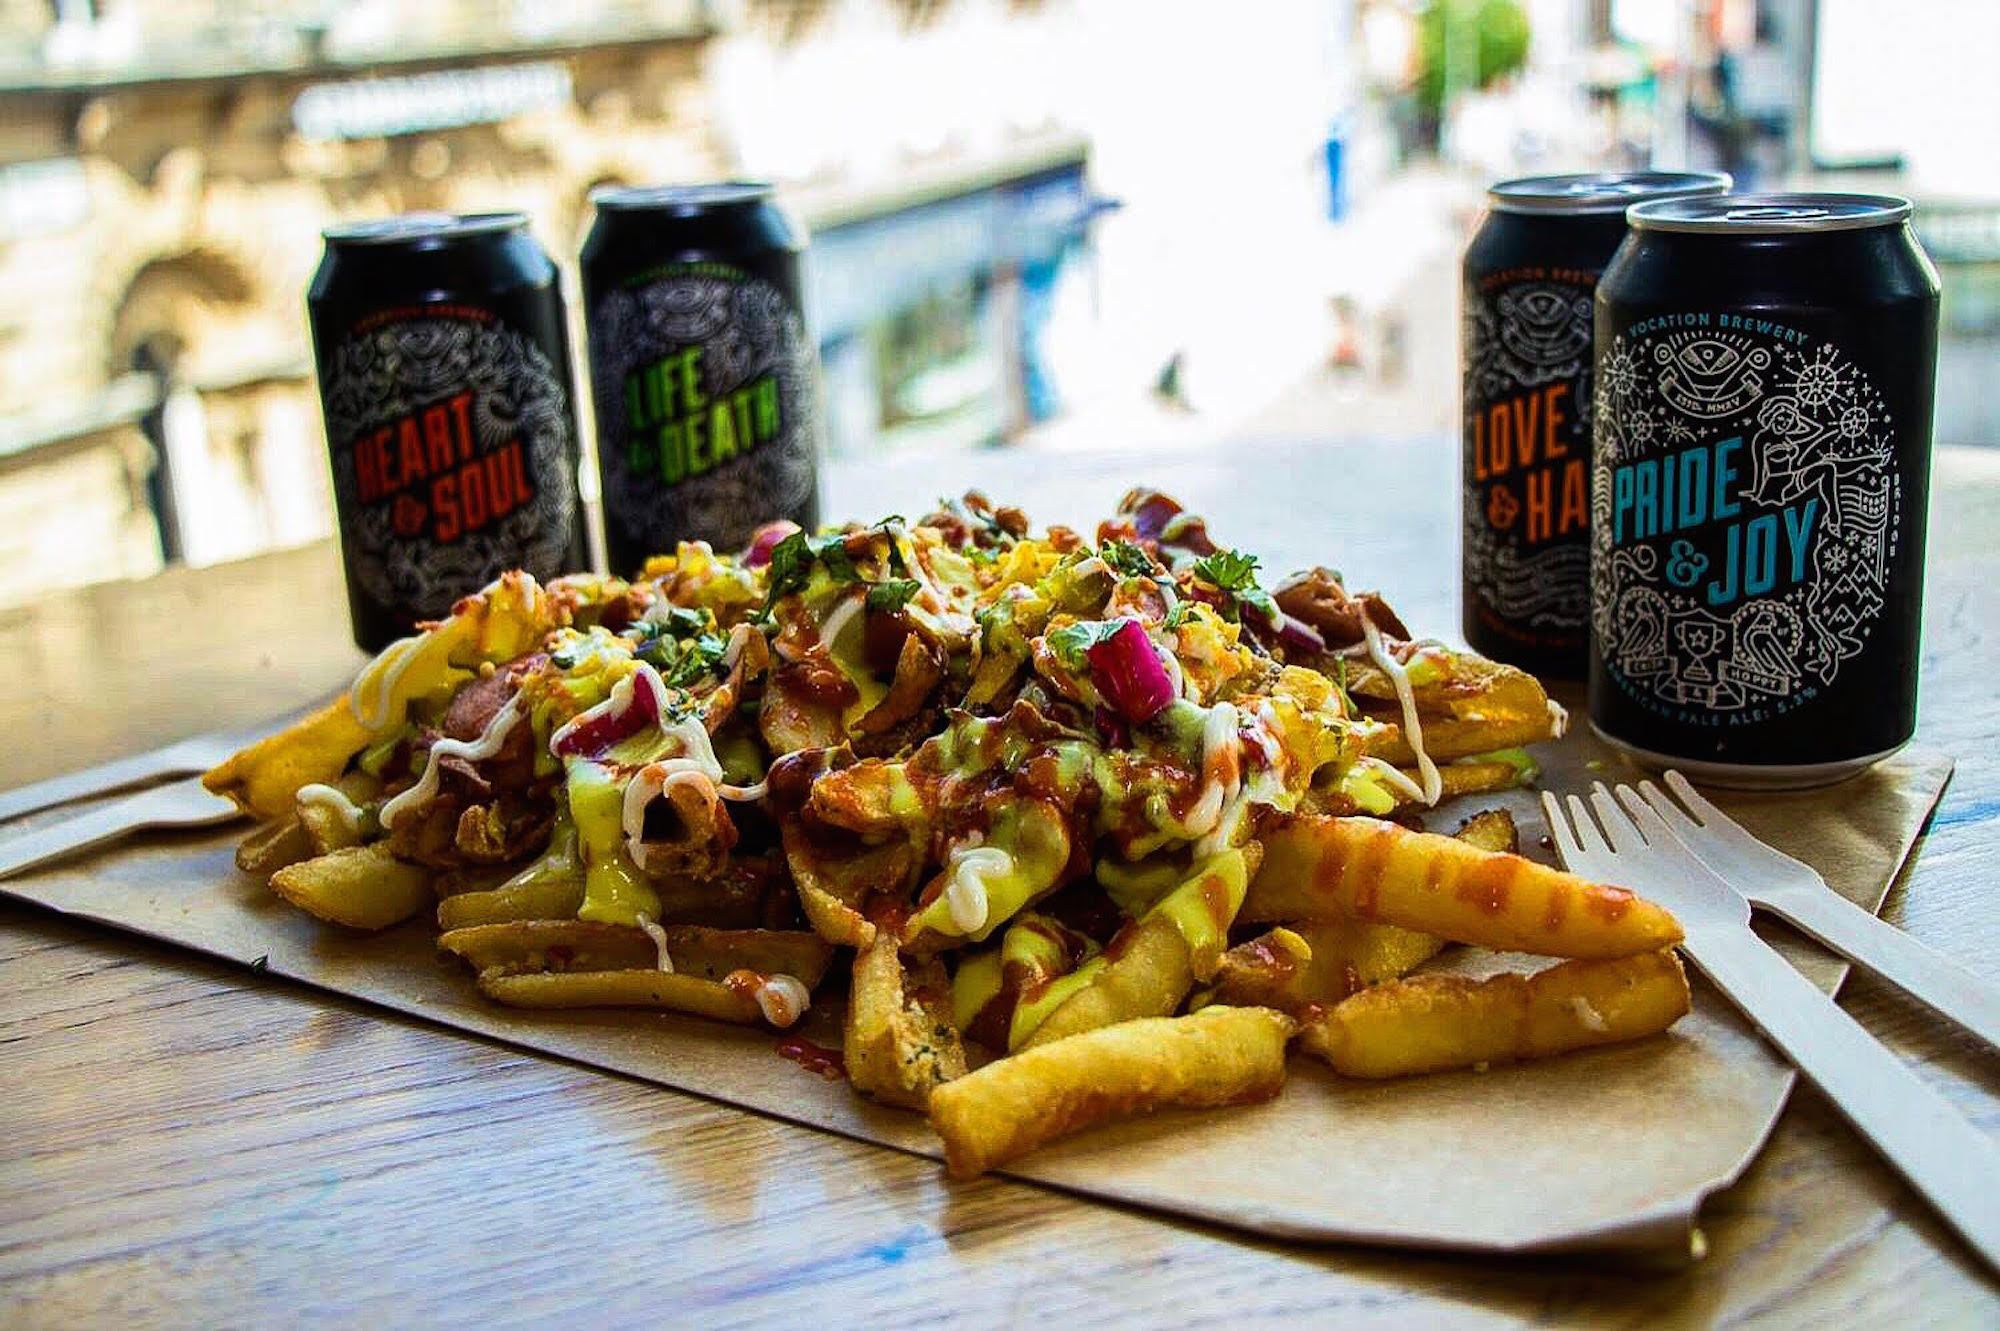 Loaded fries sharer 2 hi-res